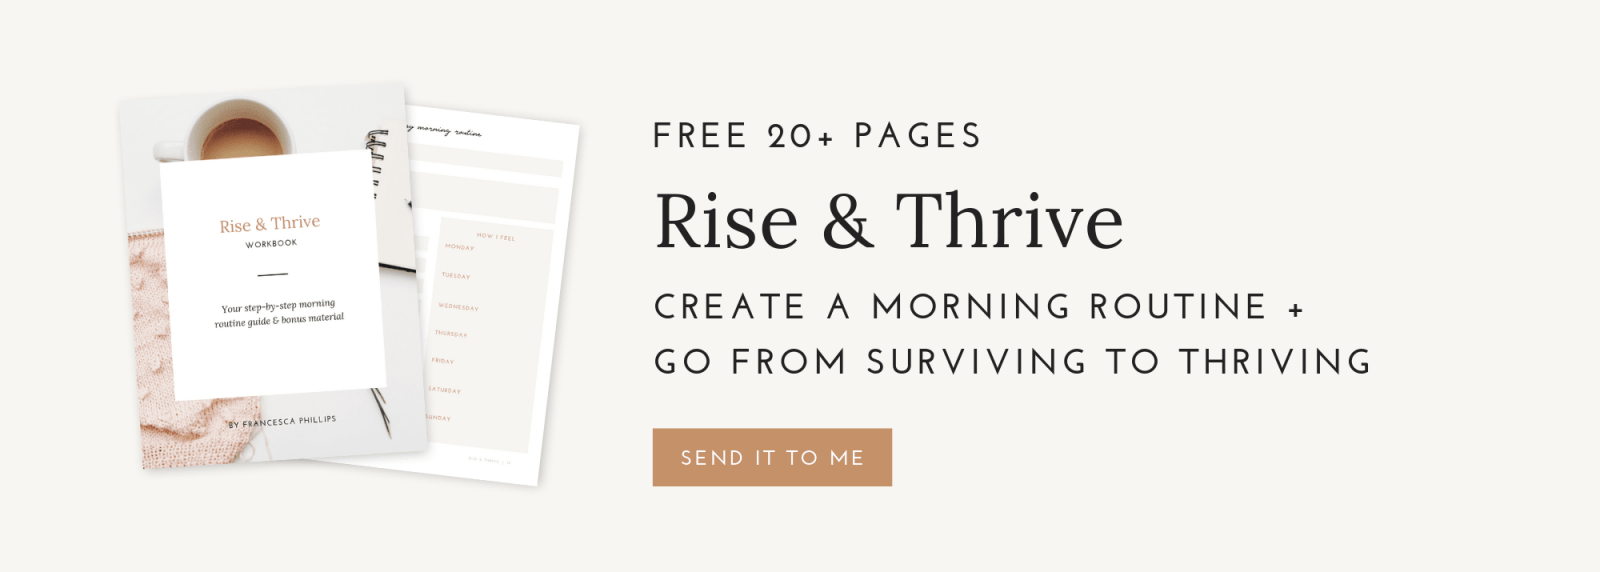 Download your free Rise & Thrive workbook by Francesca Phillips to go from surviving to thriving.